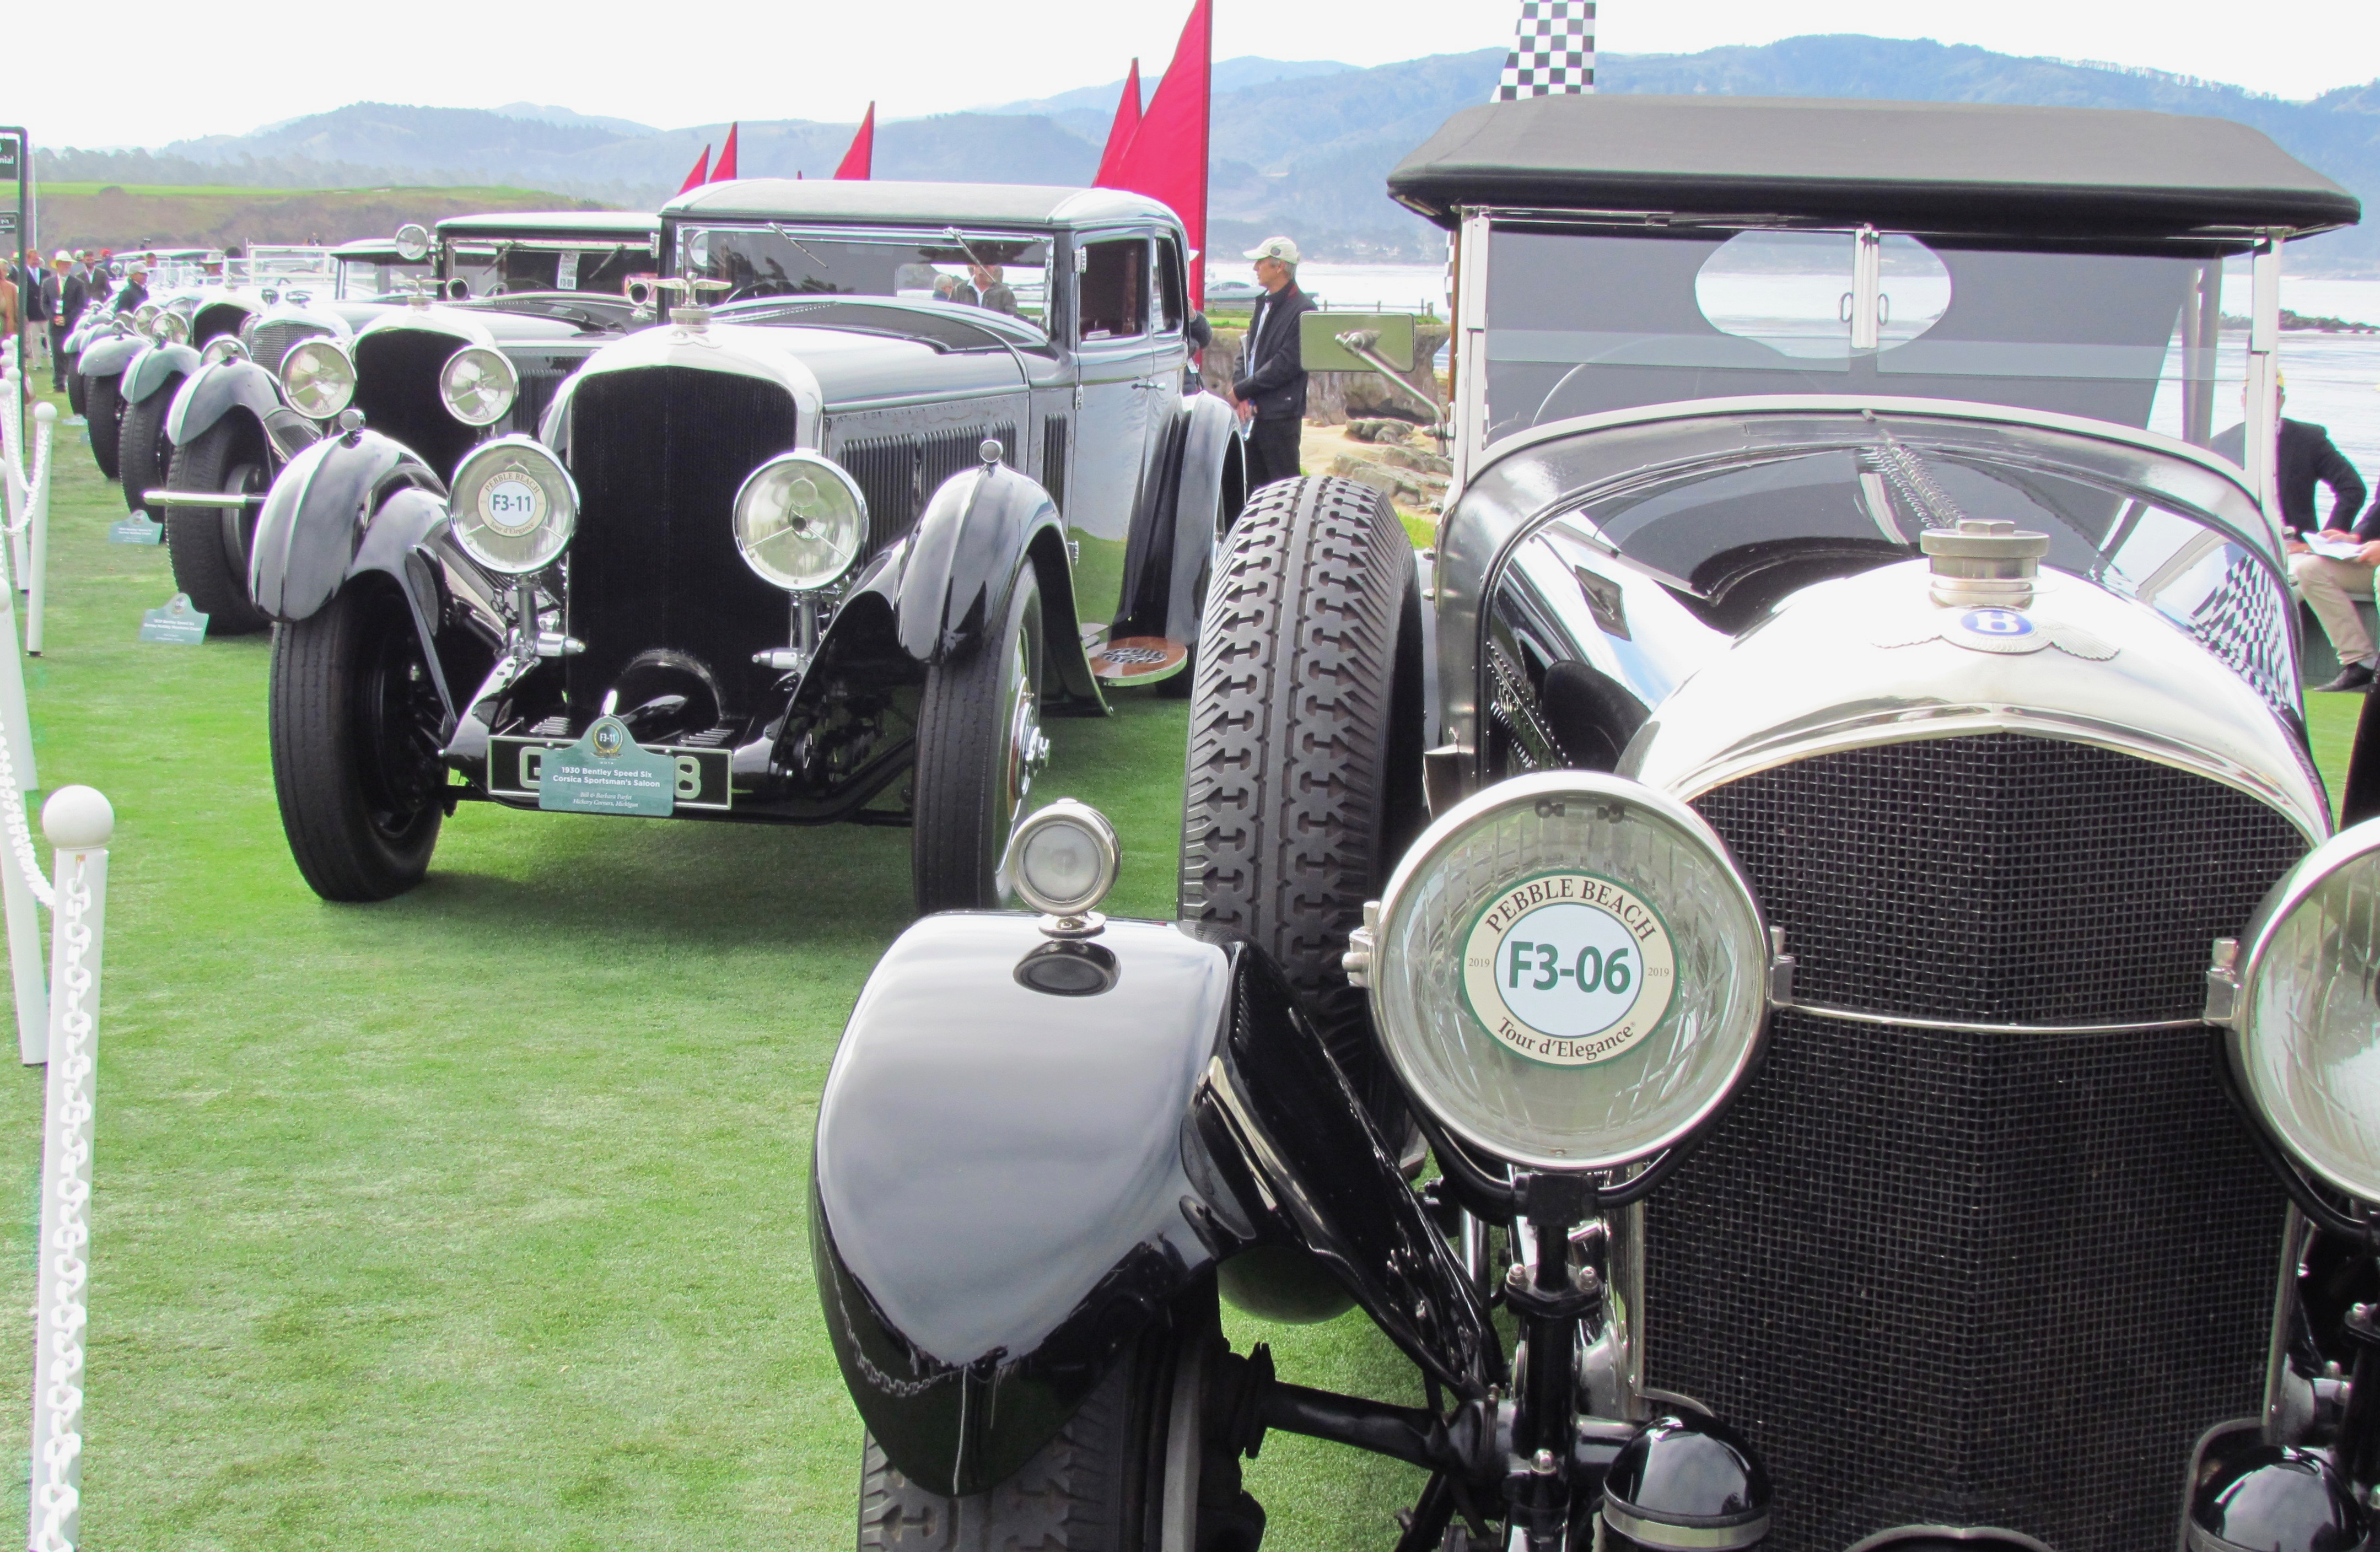 1938 Bentley, 1938 Bentley takes Best of Show at Pebble Beach, ClassicCars.com Journal